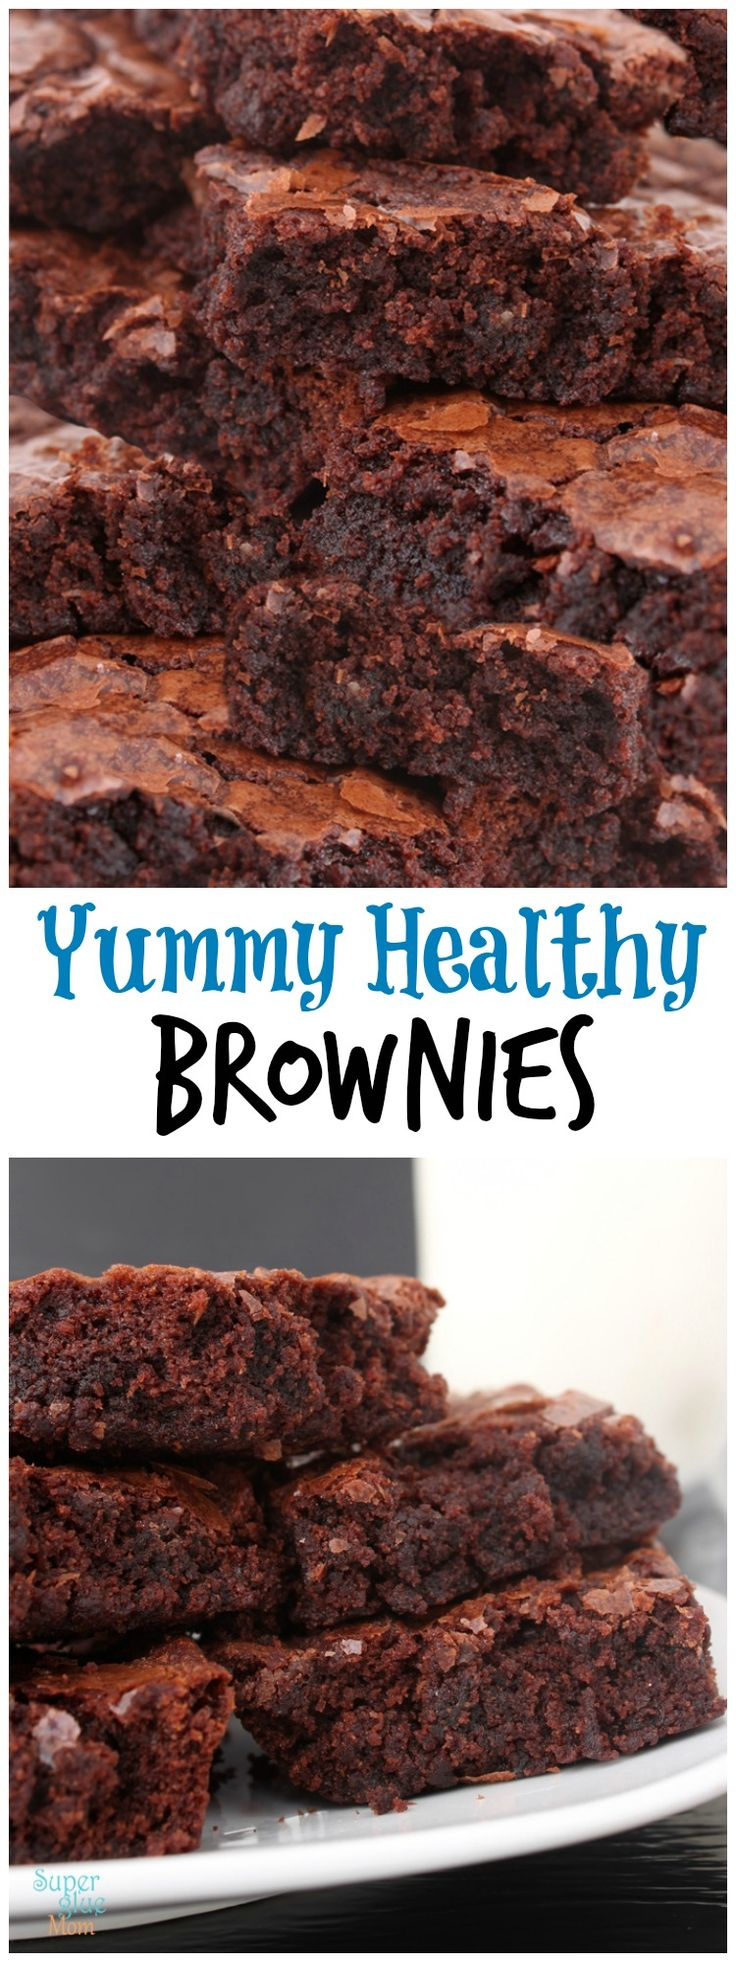 This Yummy Healthy Fudgy Chunky Chocolate Brownies Recipe is one that won't disappoint!